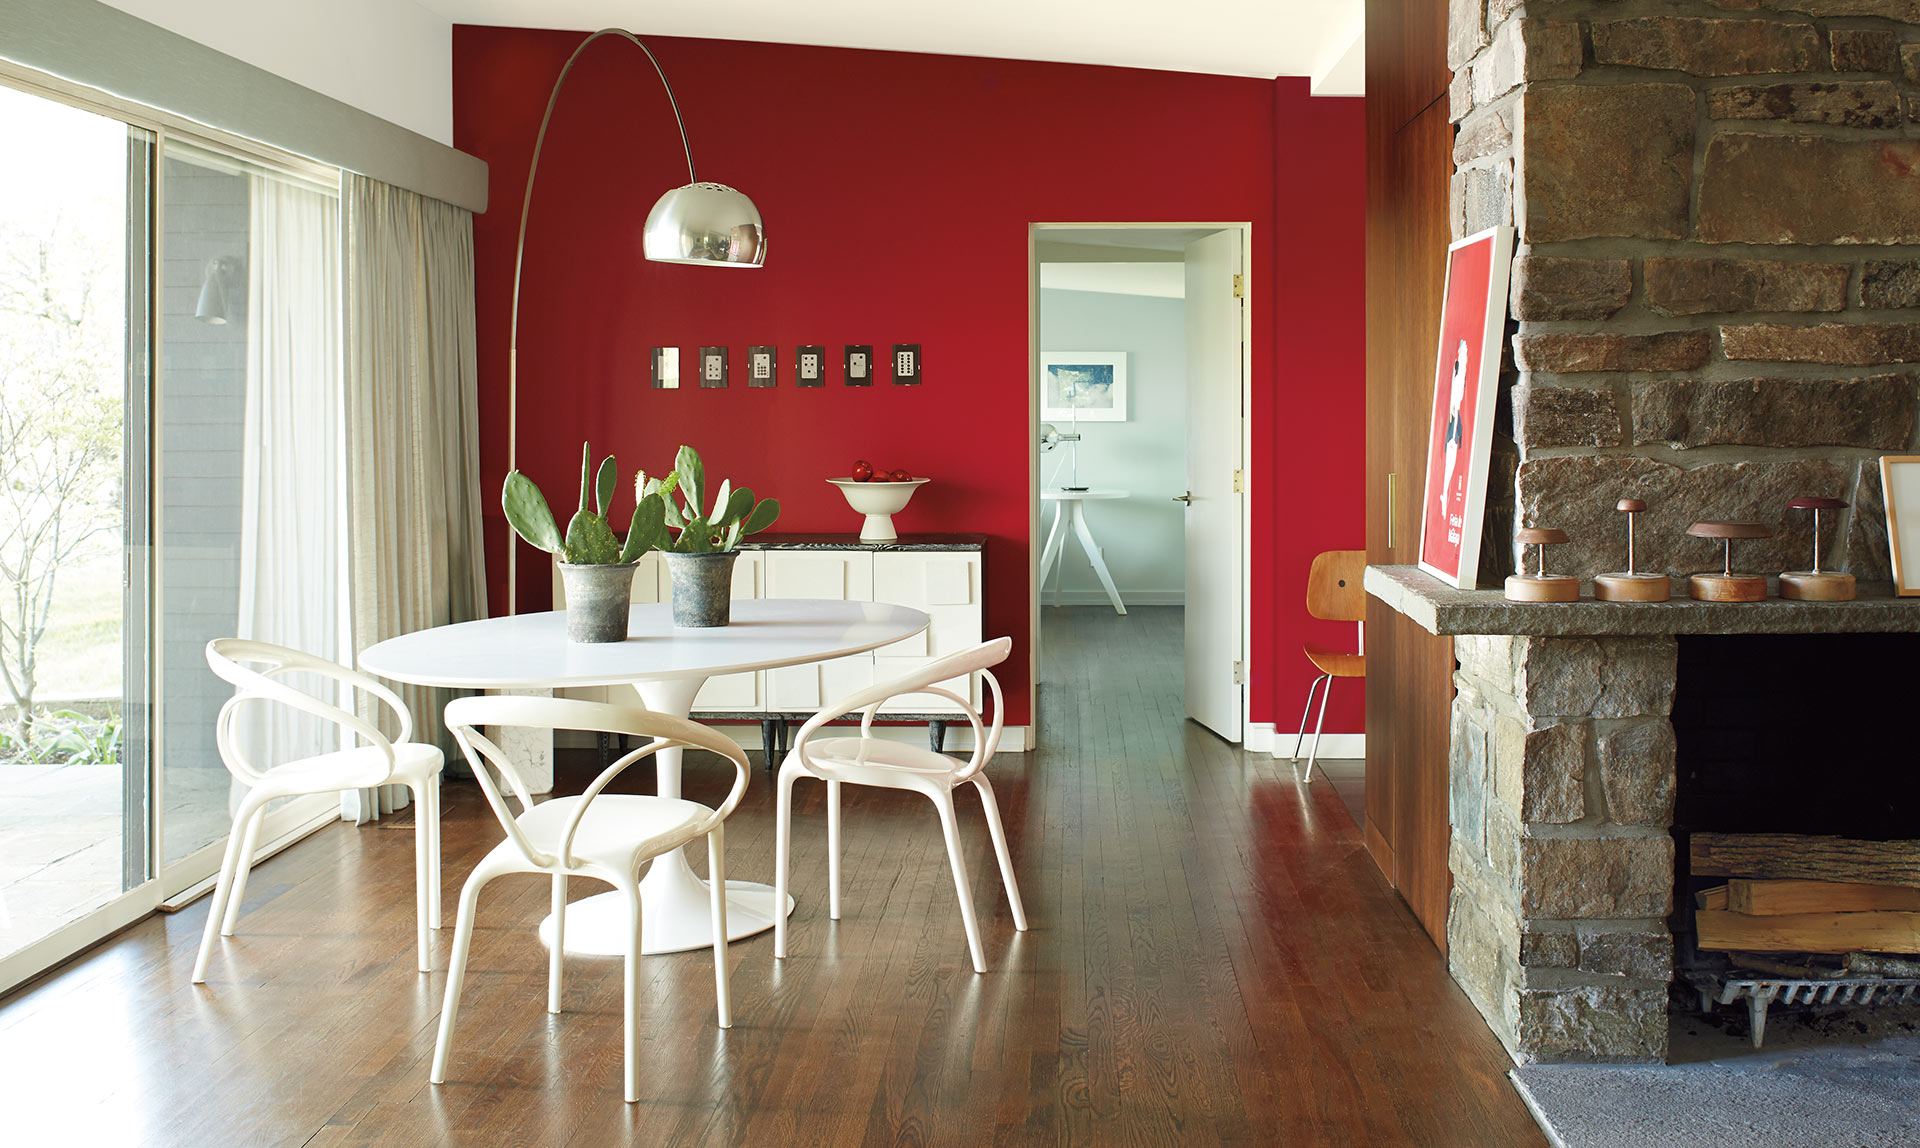 THE PURE LINES and crisp geometry of a modern home find their playful side in lighthearted reds and pinks that bring minimalism to life.